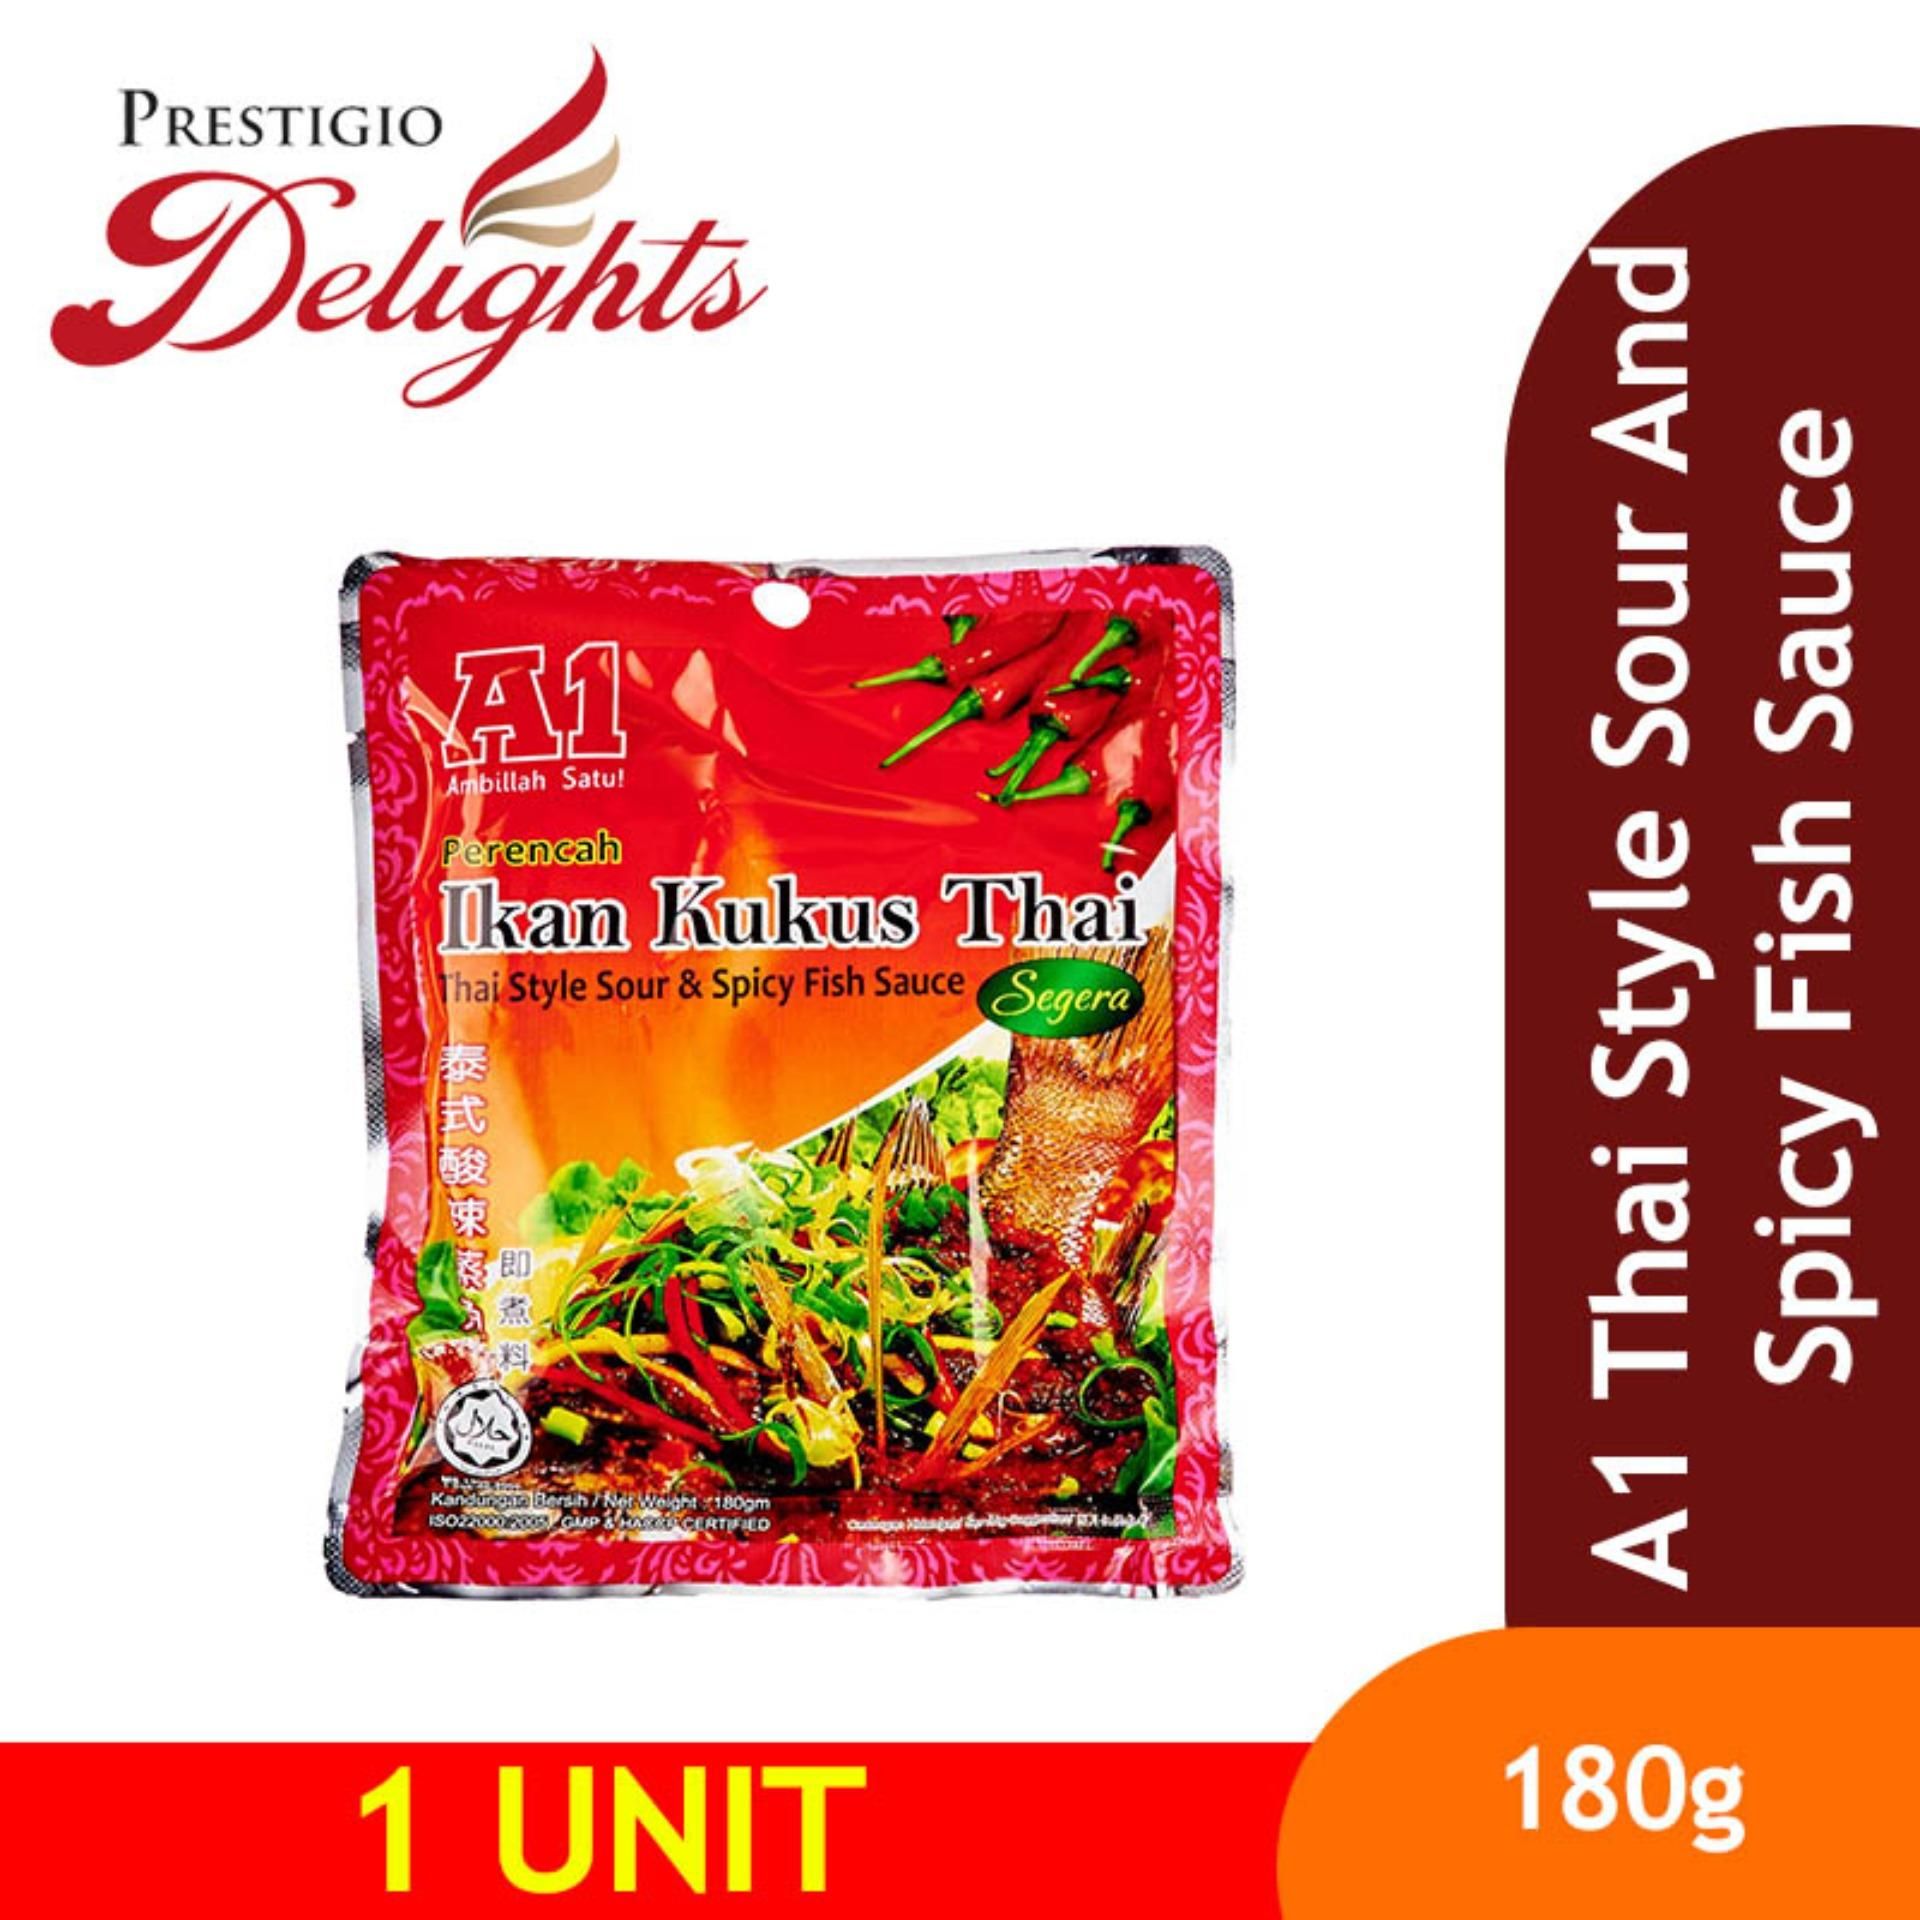 A1 Thai Style Sour & Spicy Fish Sauce 180 By Prestigio Delights.